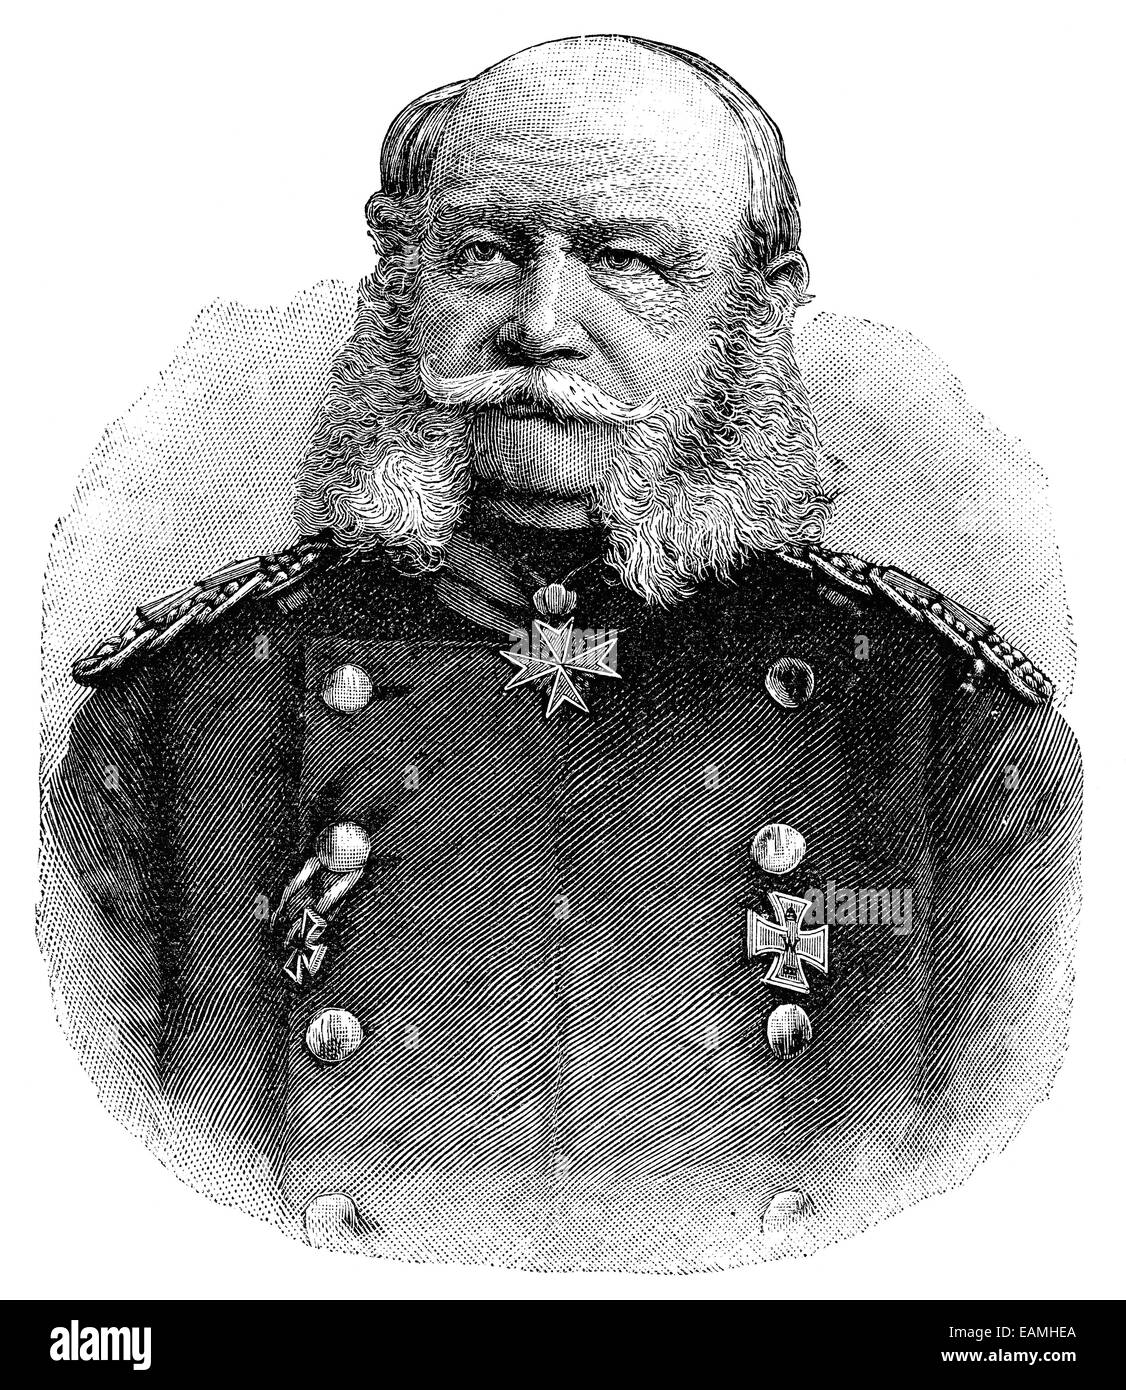 Portrait of William I, German Emperor. Publication of the book 'A Century in the text and pictures', Berlin, - Stock Image